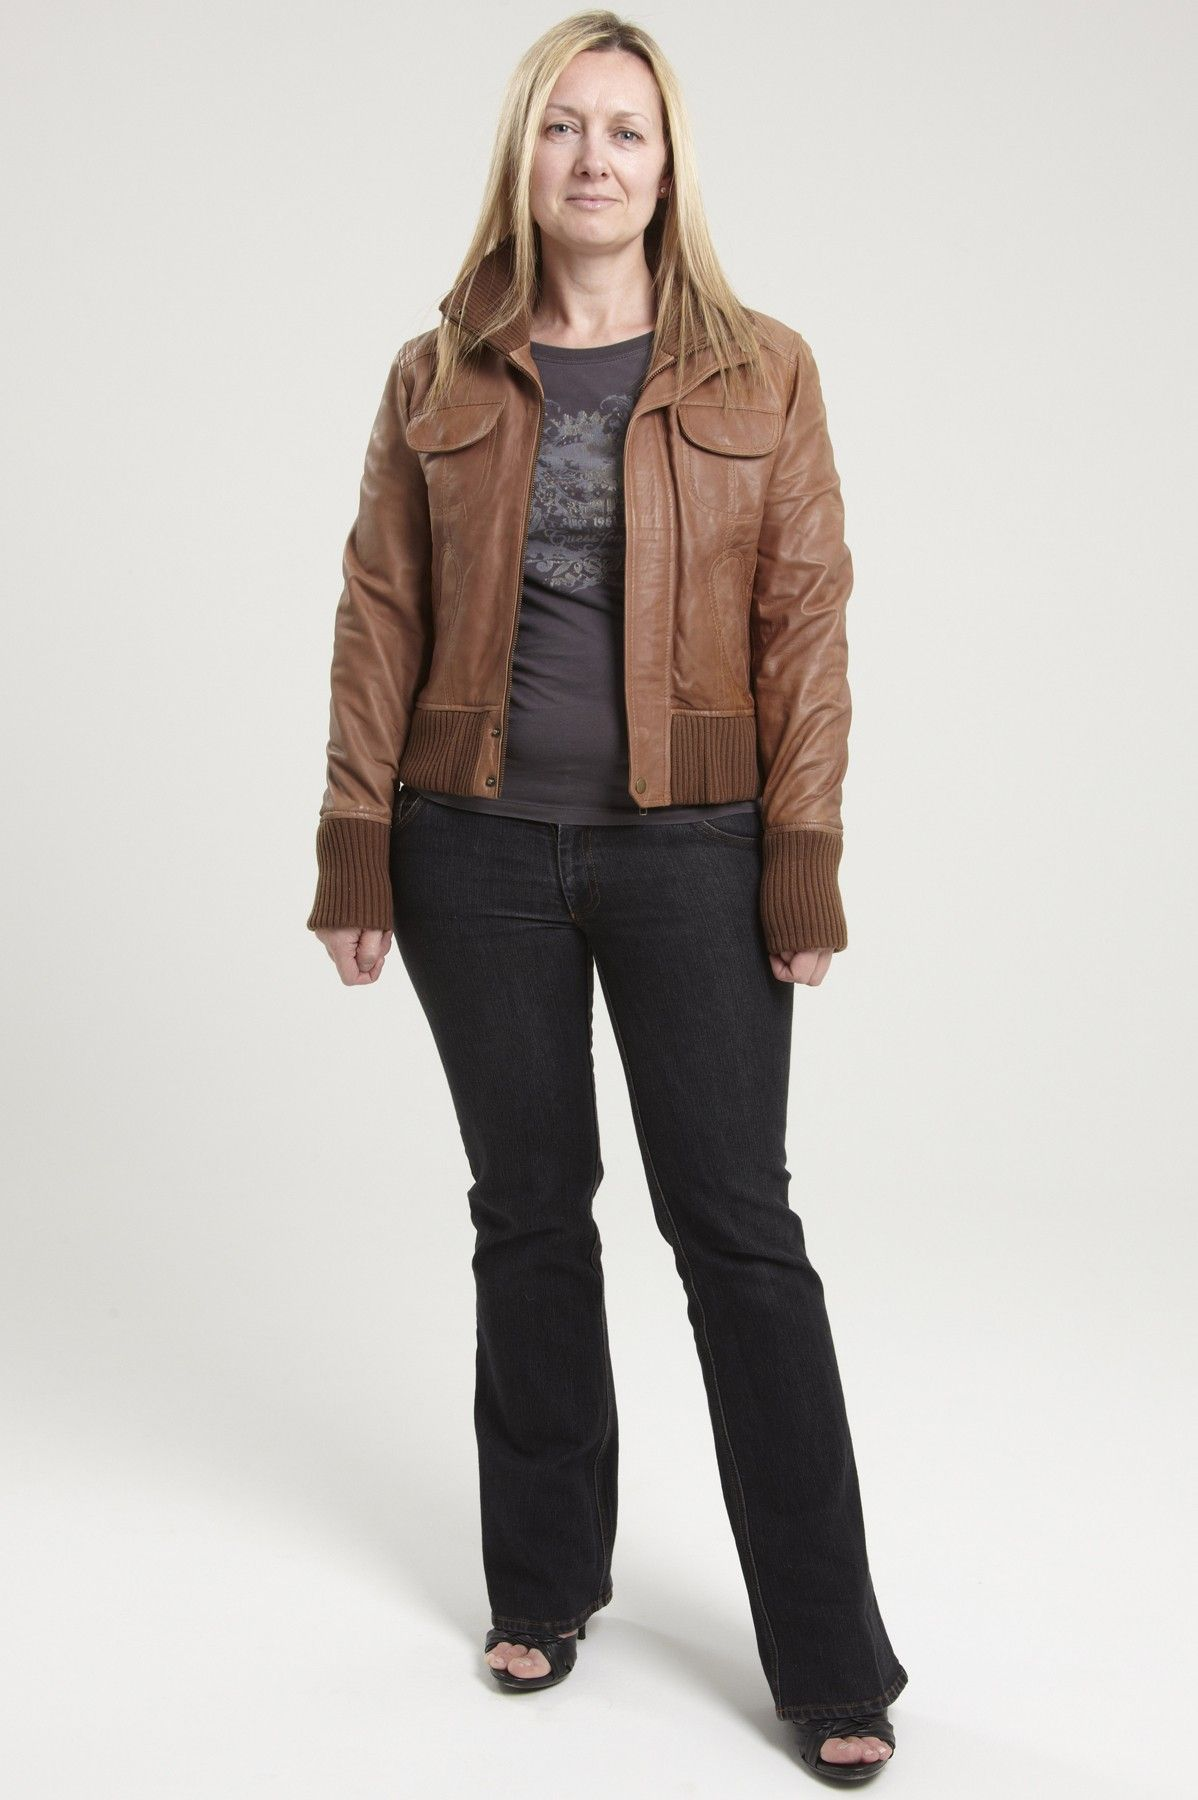 Womens Tan Brown Leather Bomber Jacket Larna | Women leather ...